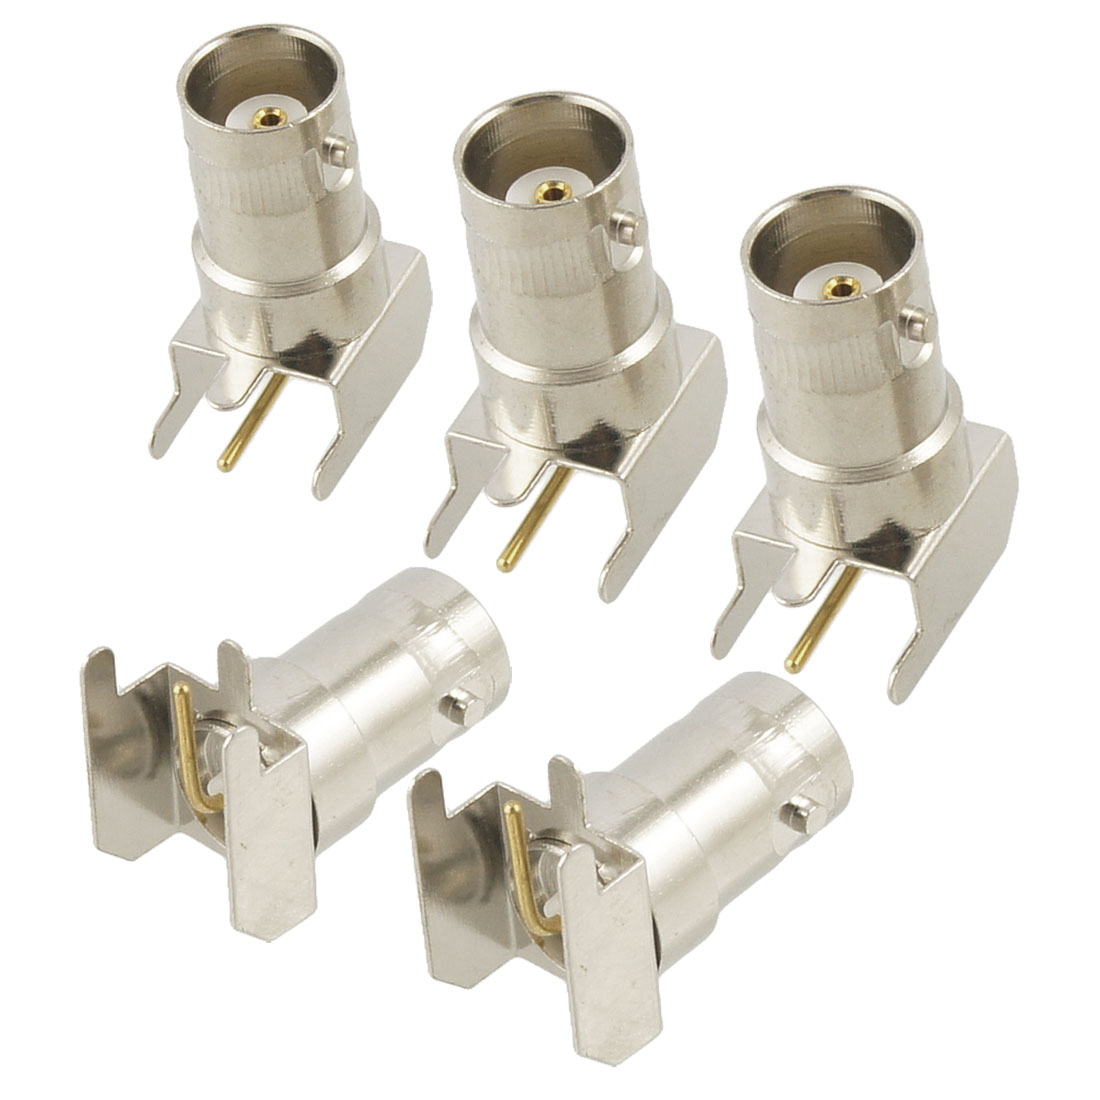 5 Pcs BNC Female Right Angle Solder PCB Mount RF Connector Adapter